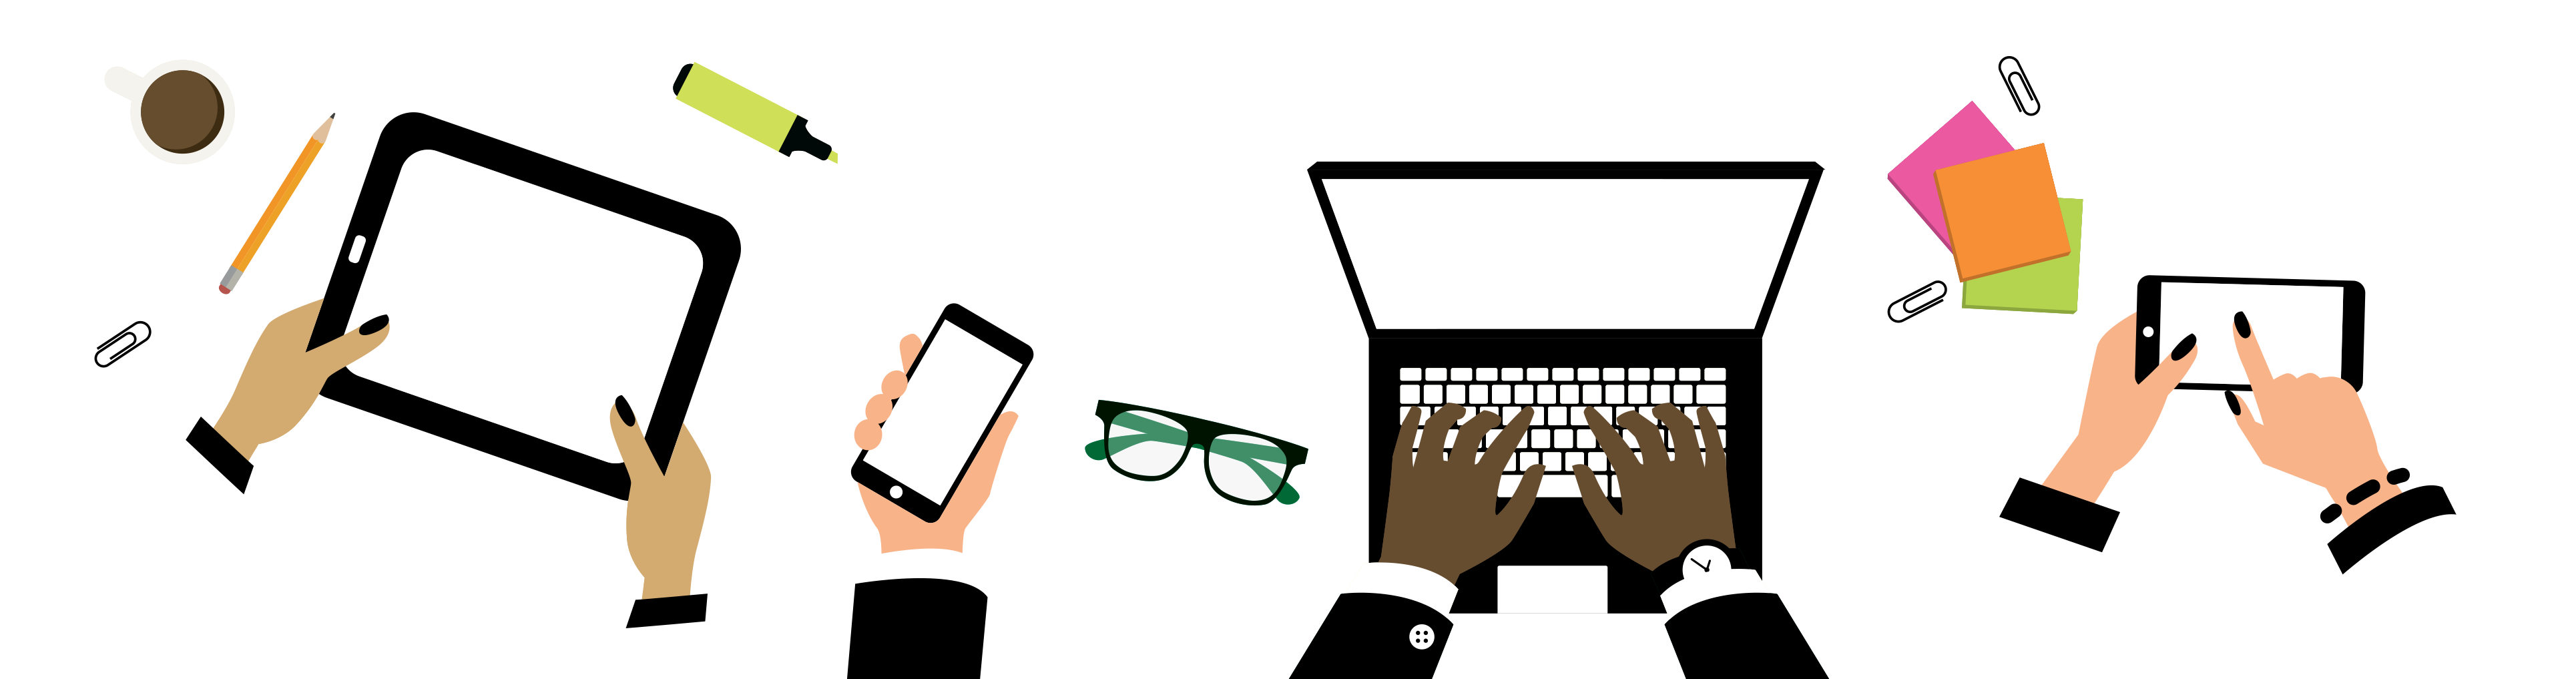 Reinventing a social intranet. Teamwork clipart participant